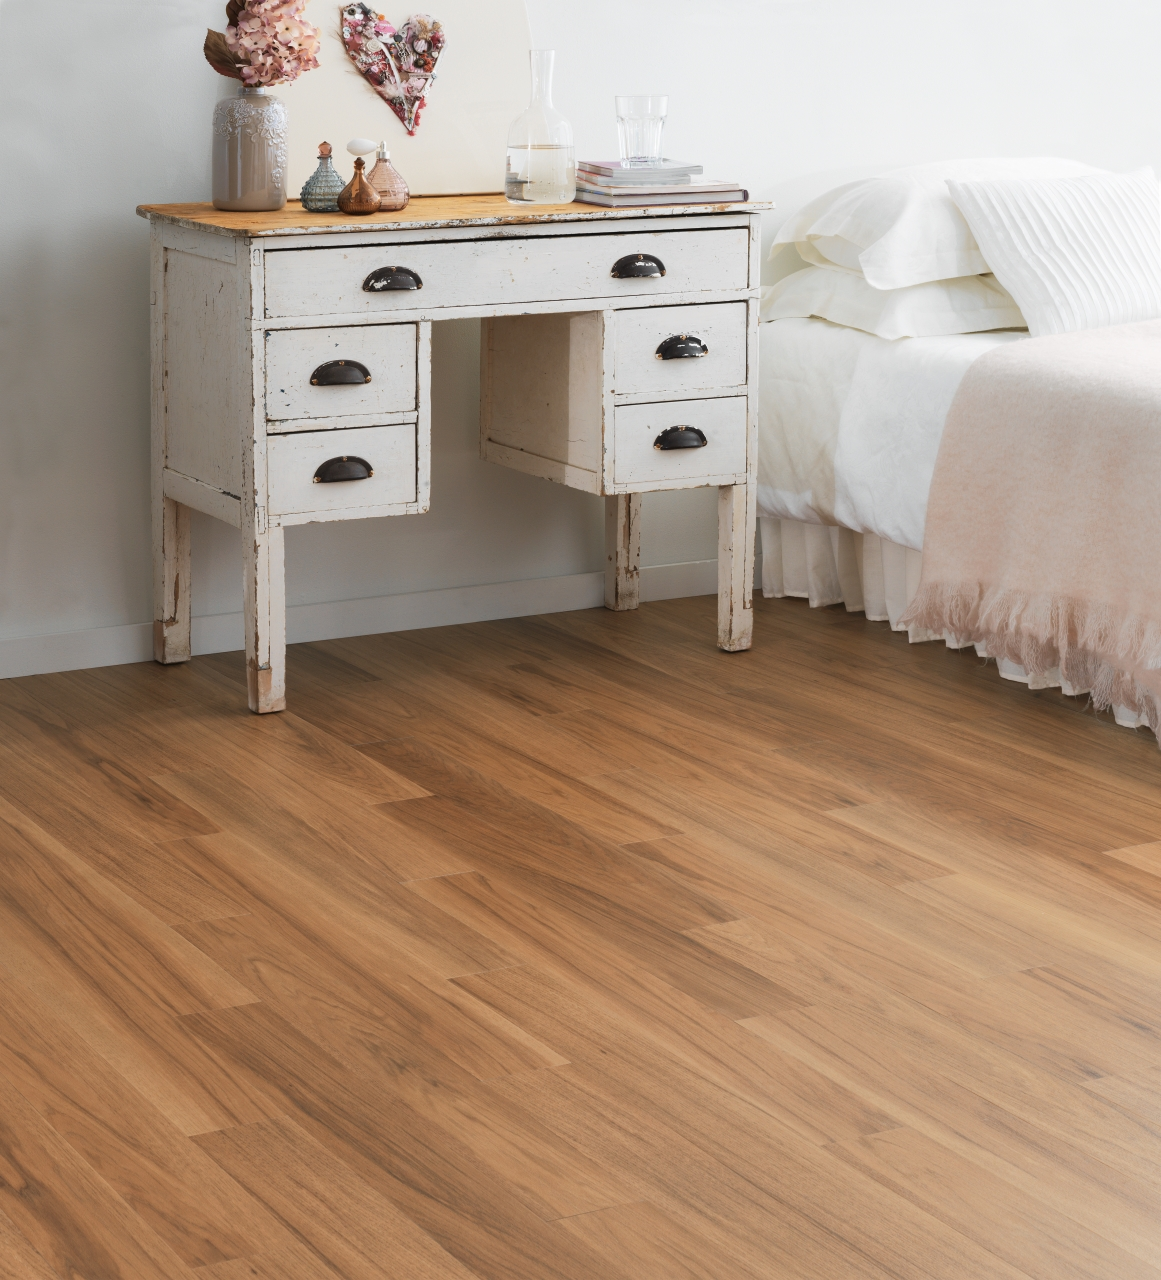 Amtico Spacia in Smoothbark Hickory (SS5W2545)